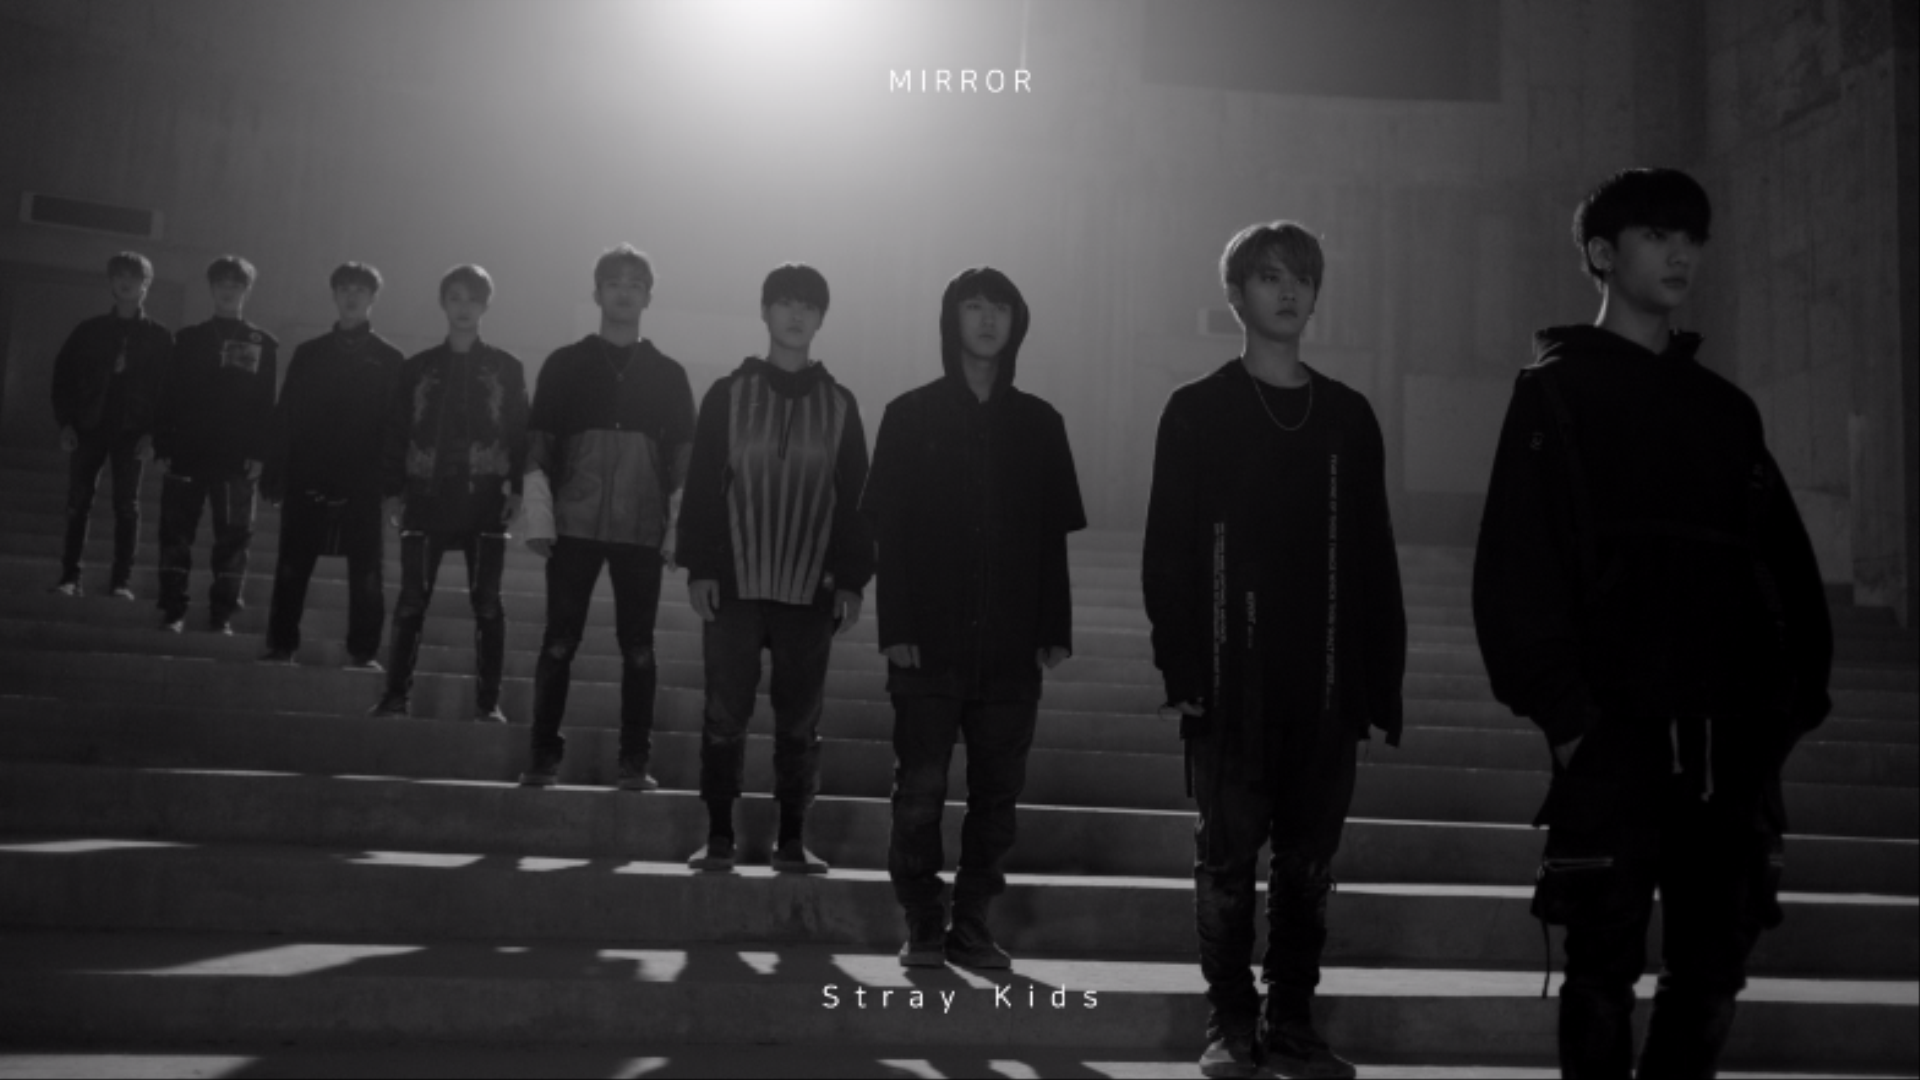 "Stray Kids(스트레이 키즈) ""Mirror"" Performance Video Teaser"